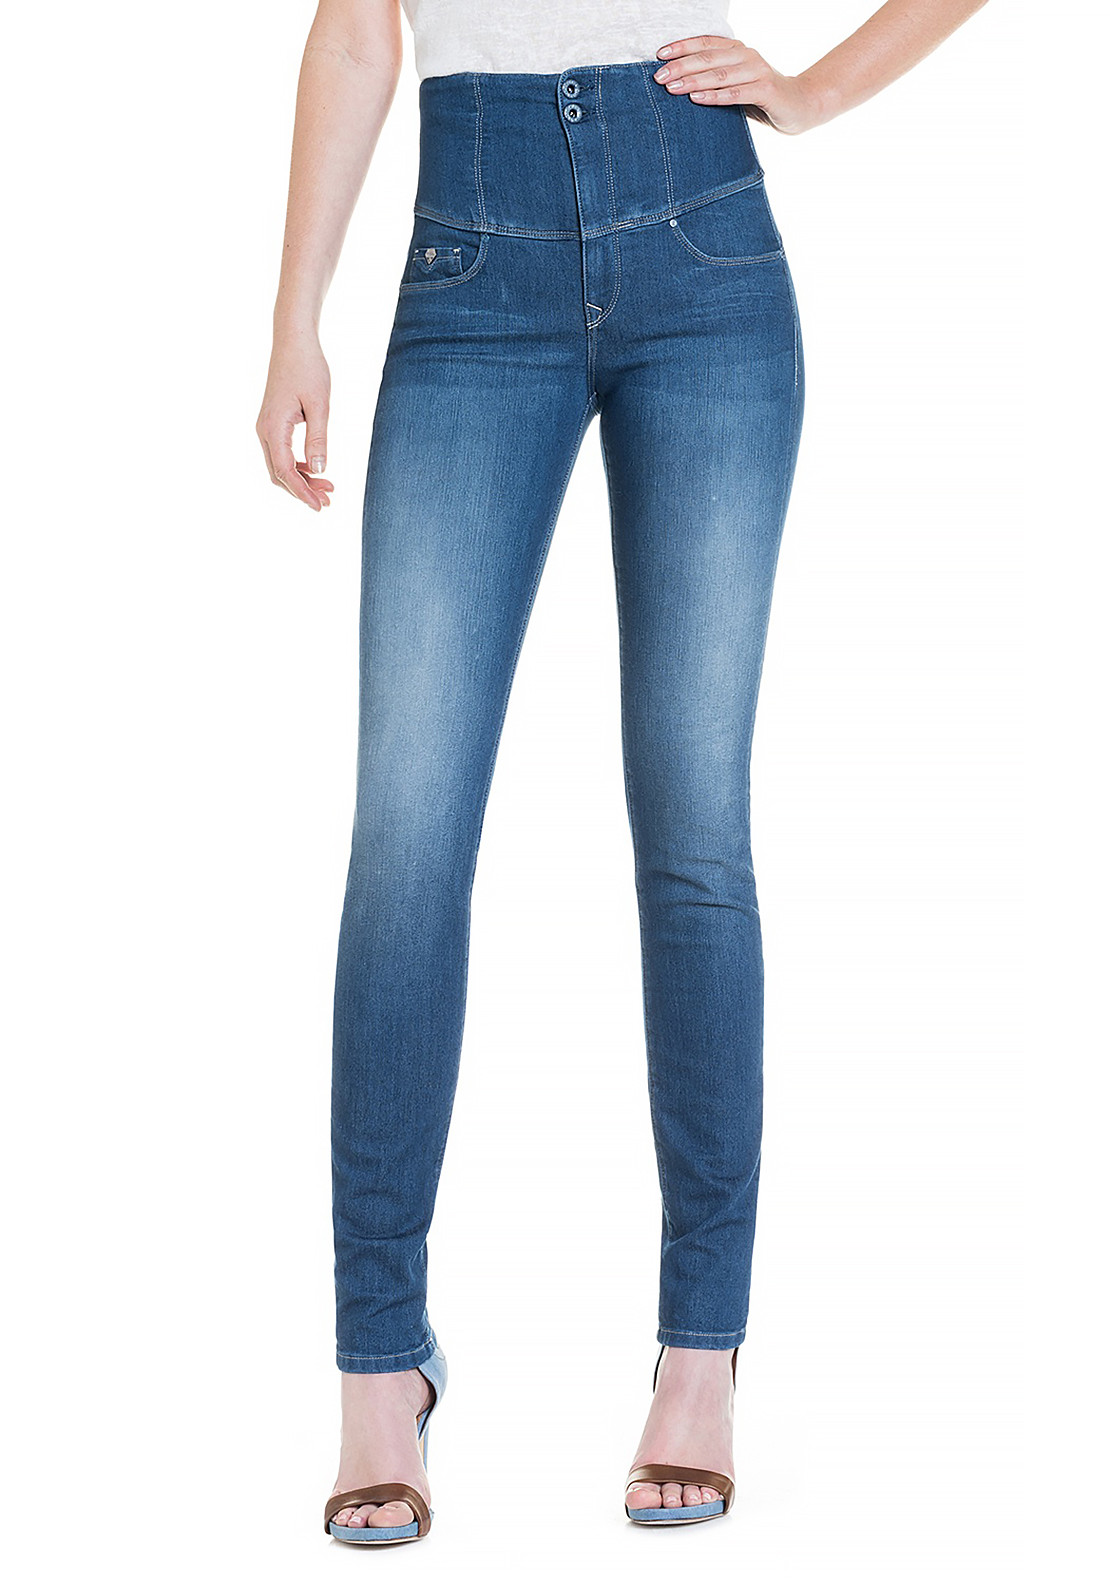 Salsa Diva High Waist Slimming Skinny Jeans, Medium Blue Denim